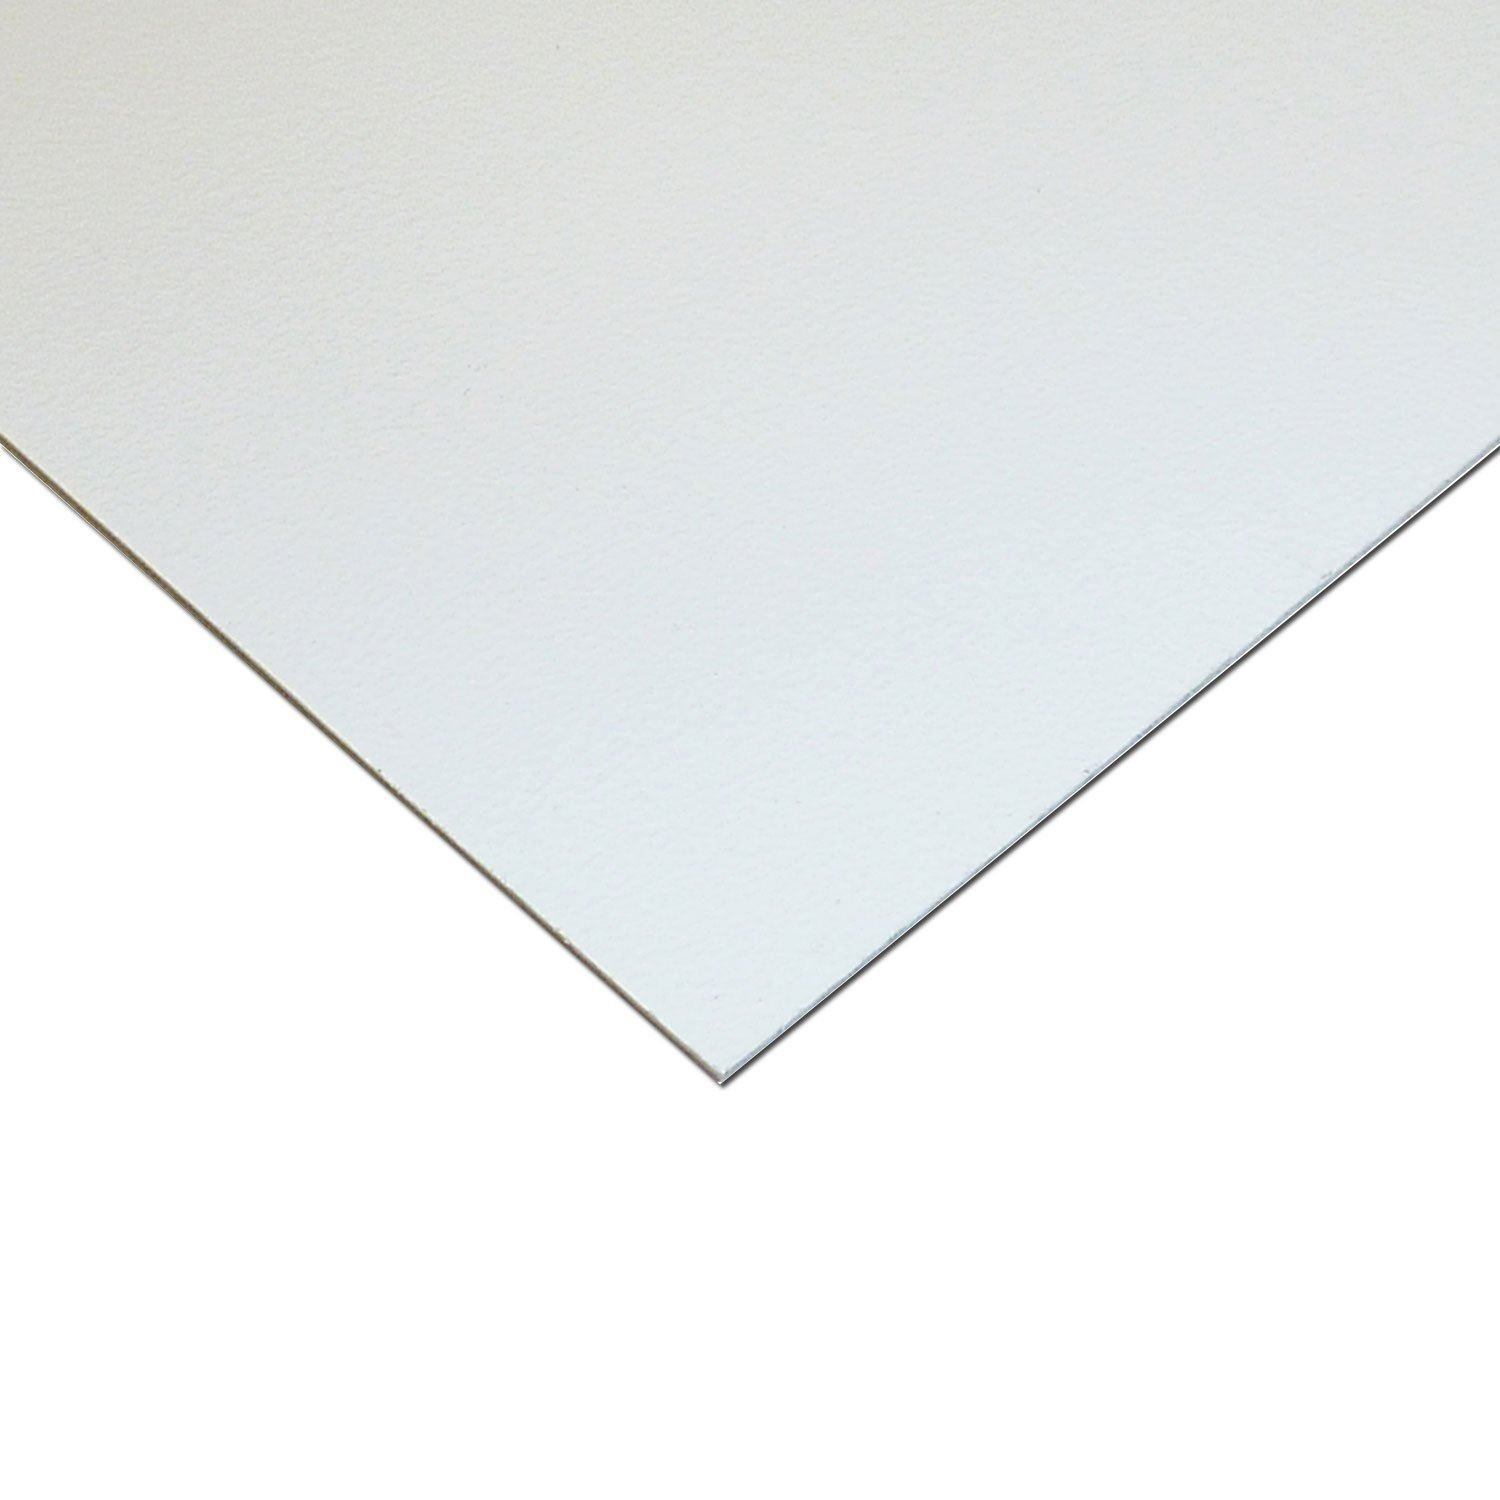 Online Plastic Supply High Impact Polystyrene Plastic Sheet .015'' x 48'' x 96'' - White